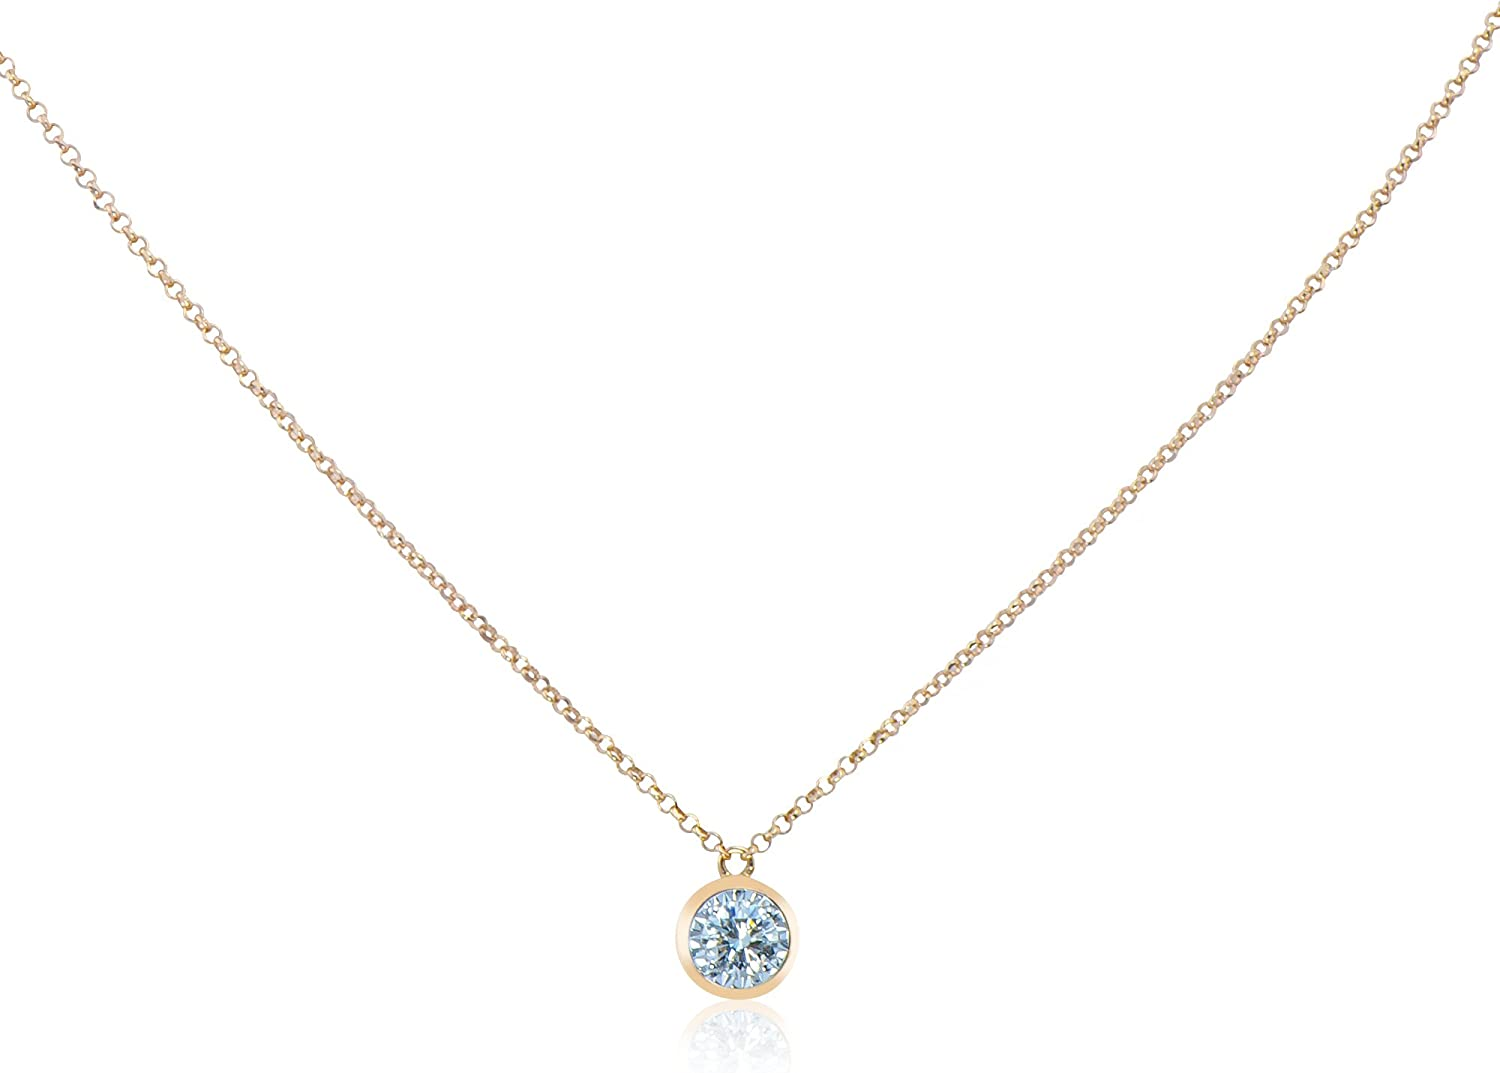 Crystal April Birthstone 18-Inch Hamilton Gold Plated Necklace with 6mm Crystal Birthstone Beads and 5-Way Charm